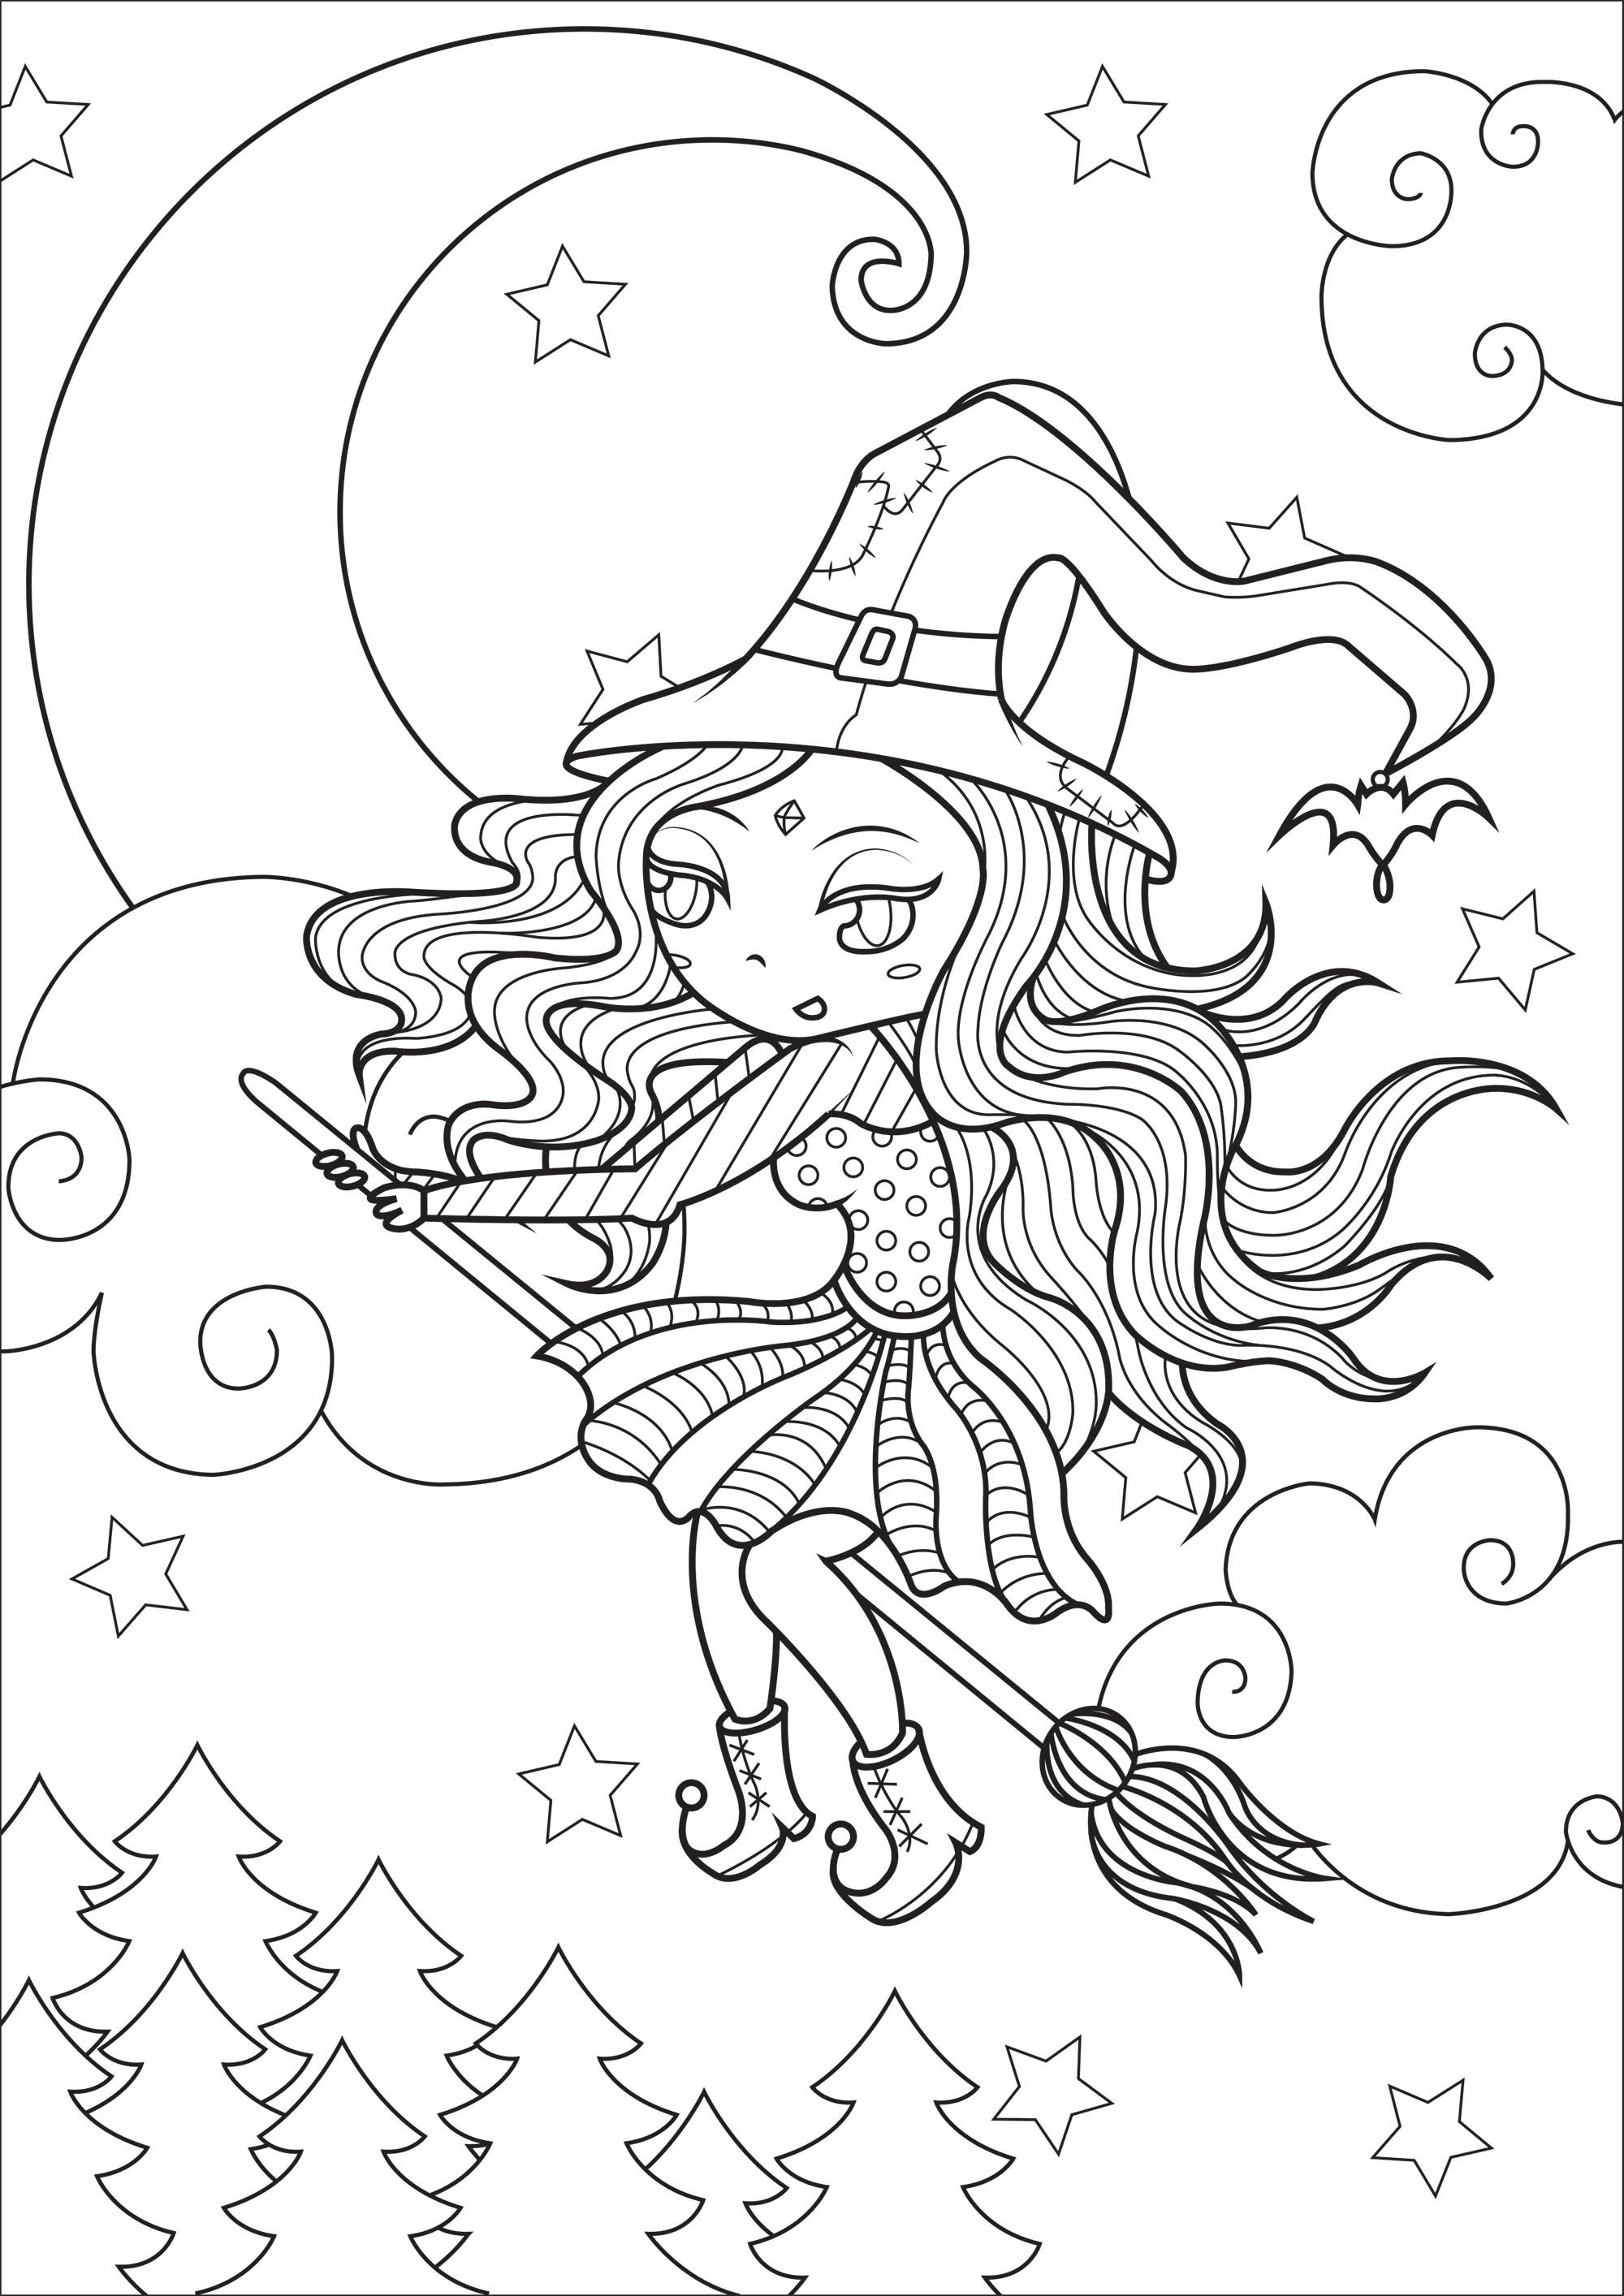 Simple Happy Witch Witch In Flight With Beautiful Moon And Starry Sky In Background From T Witch Coloring Pages Halloween Coloring Pages Halloween Coloring